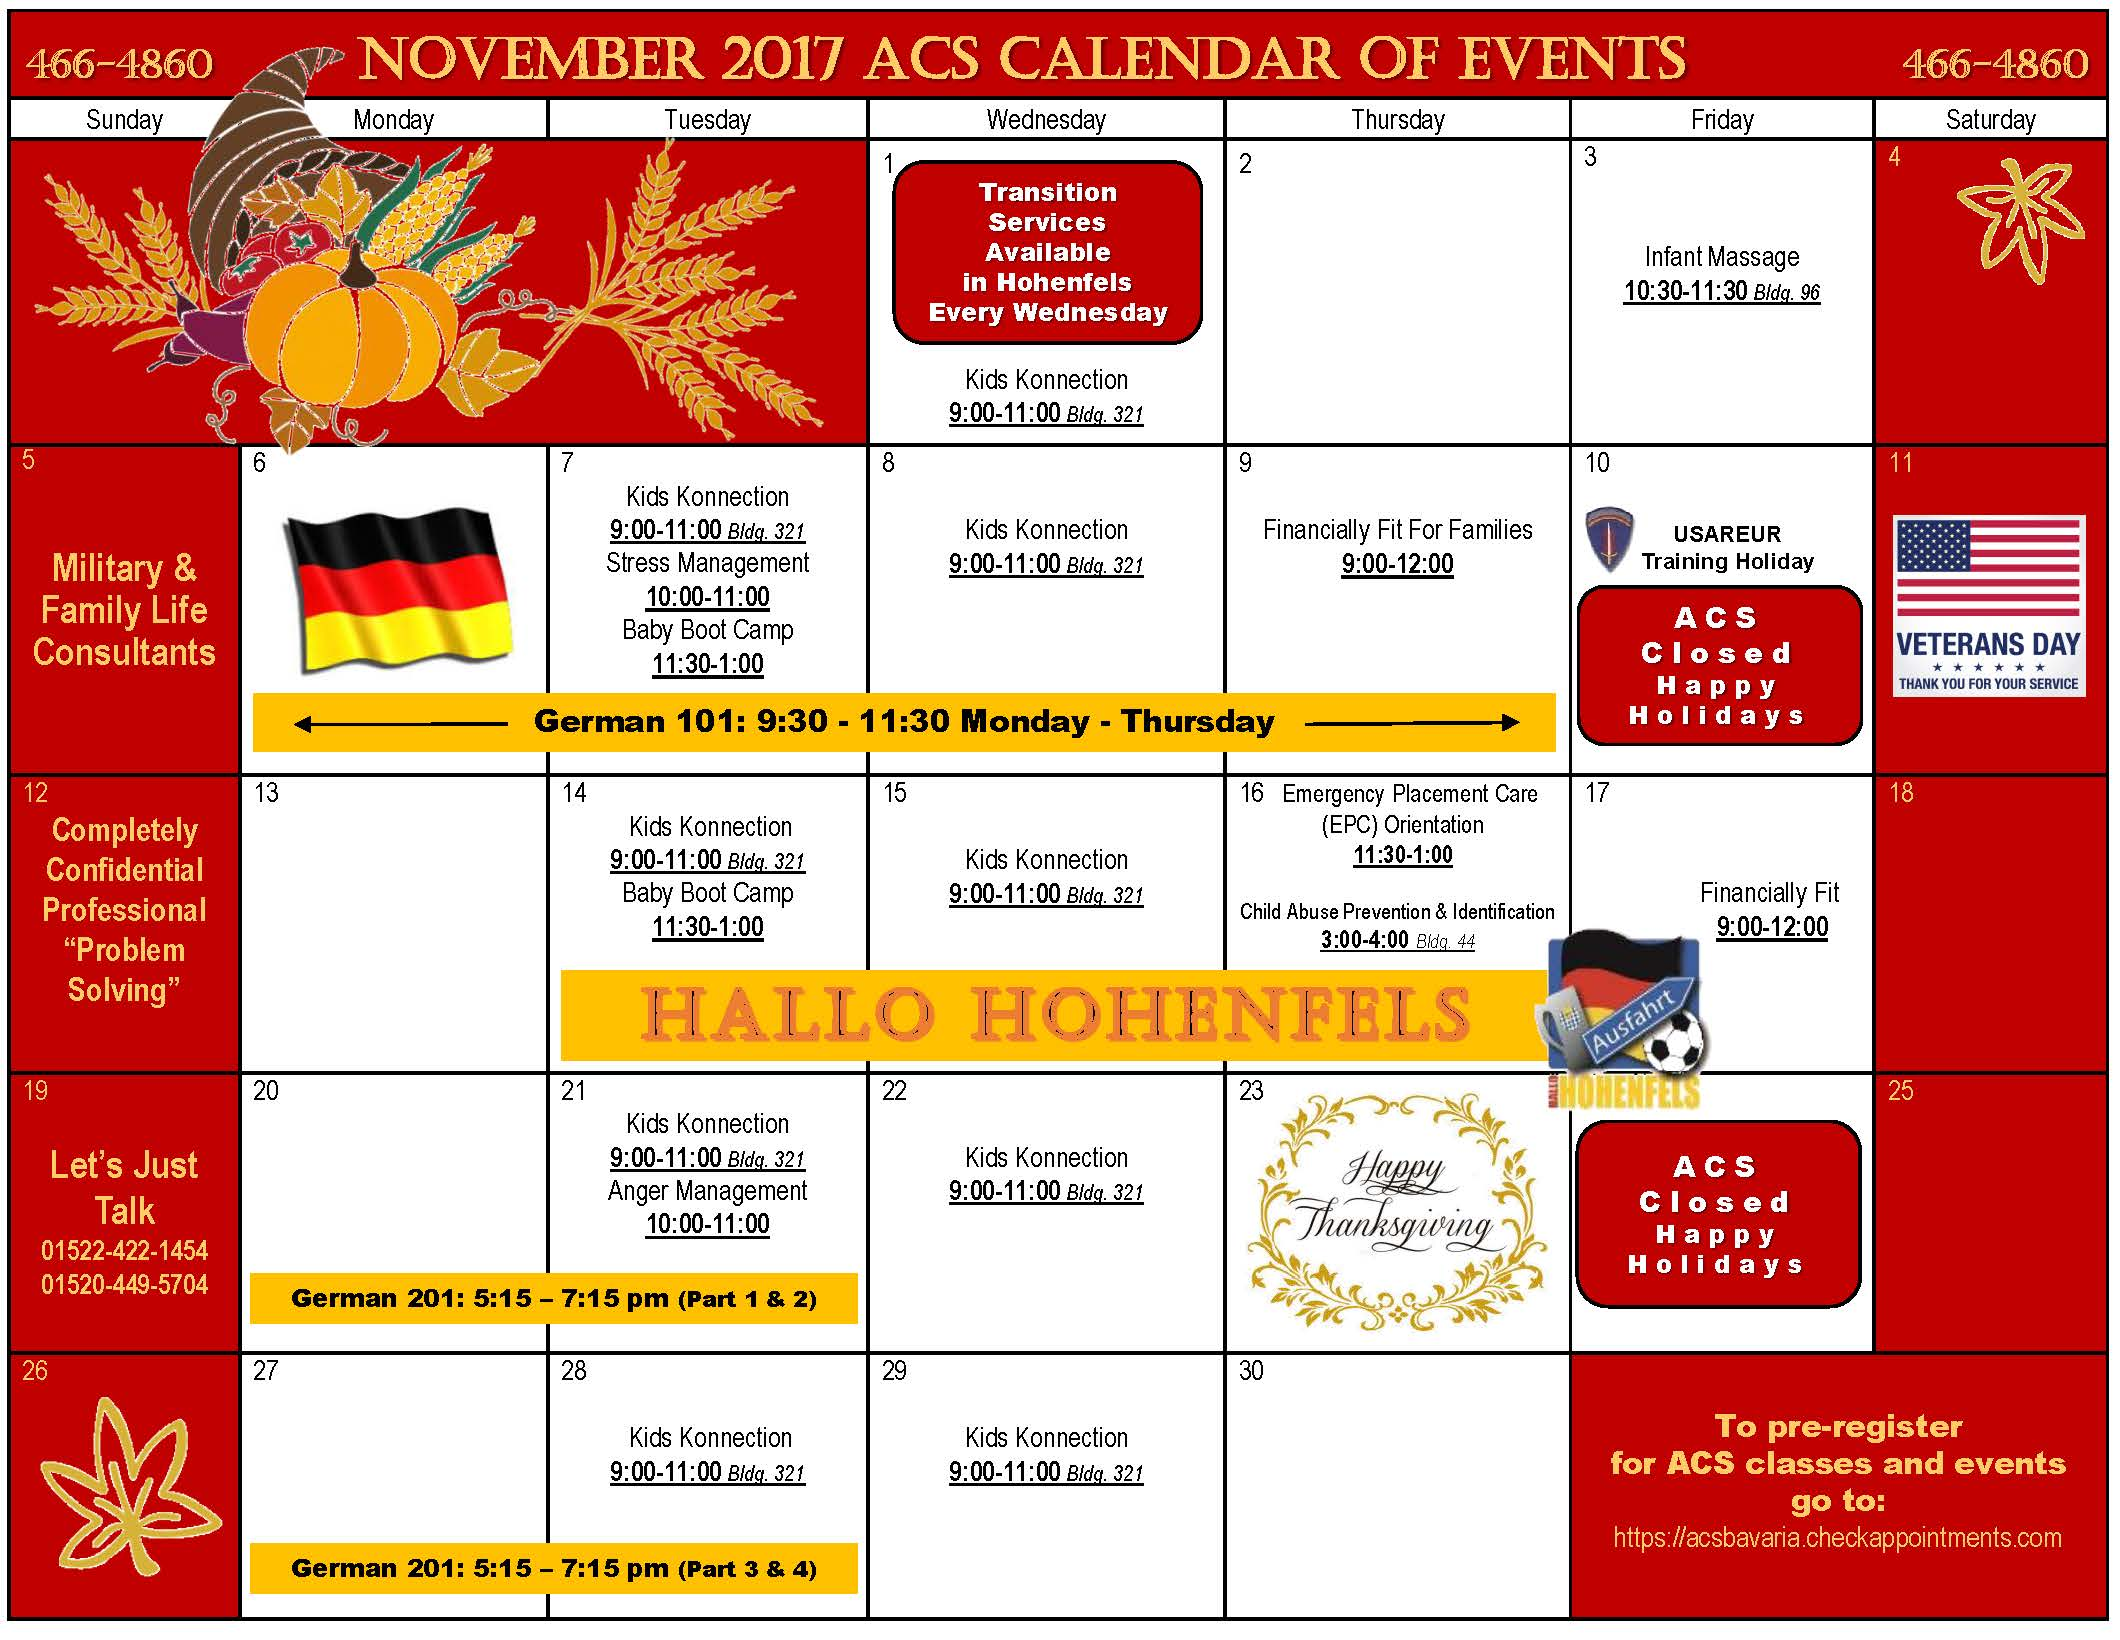 HOH November 2017 Army Community Service (ACS) Calendar of Events_Page_1.jpg